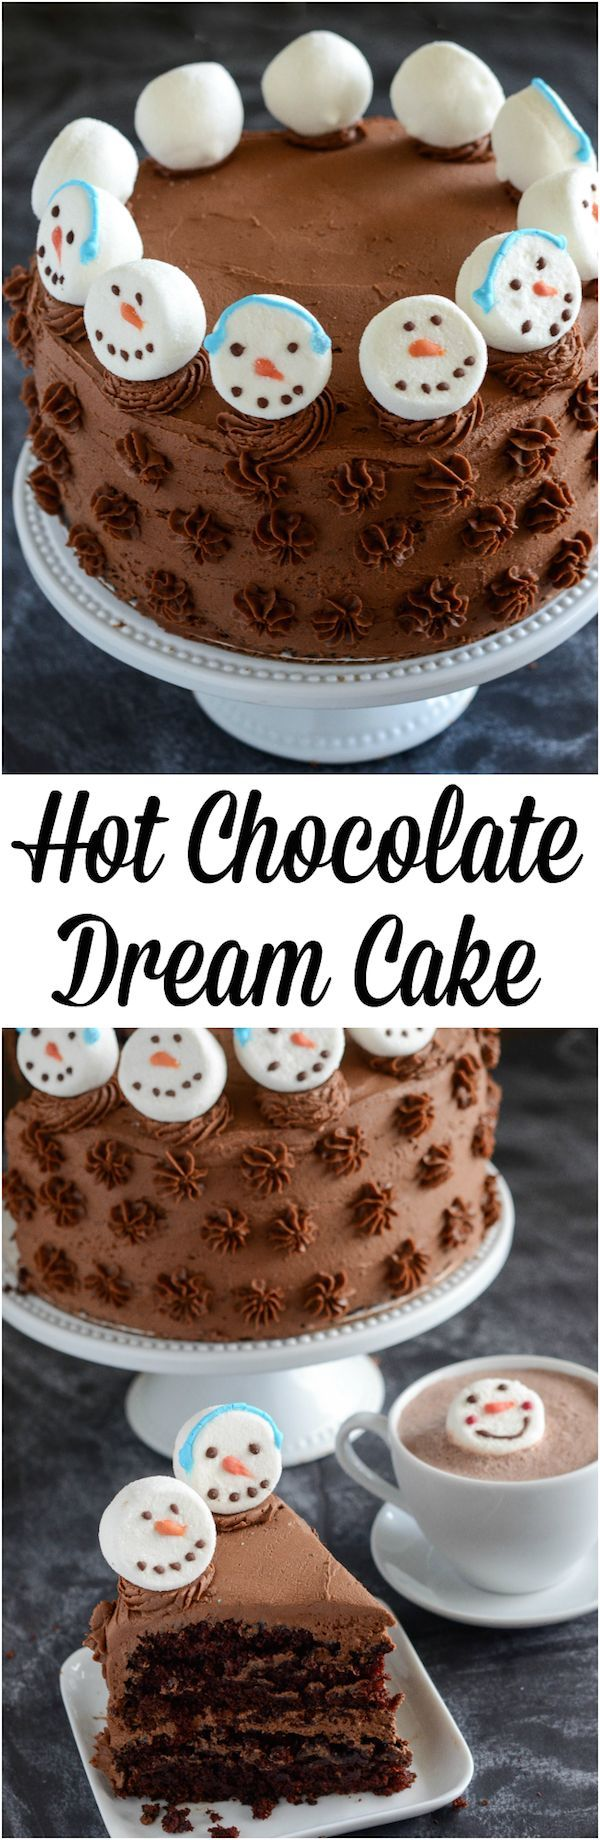 Hot Chocolate Dream Cake!